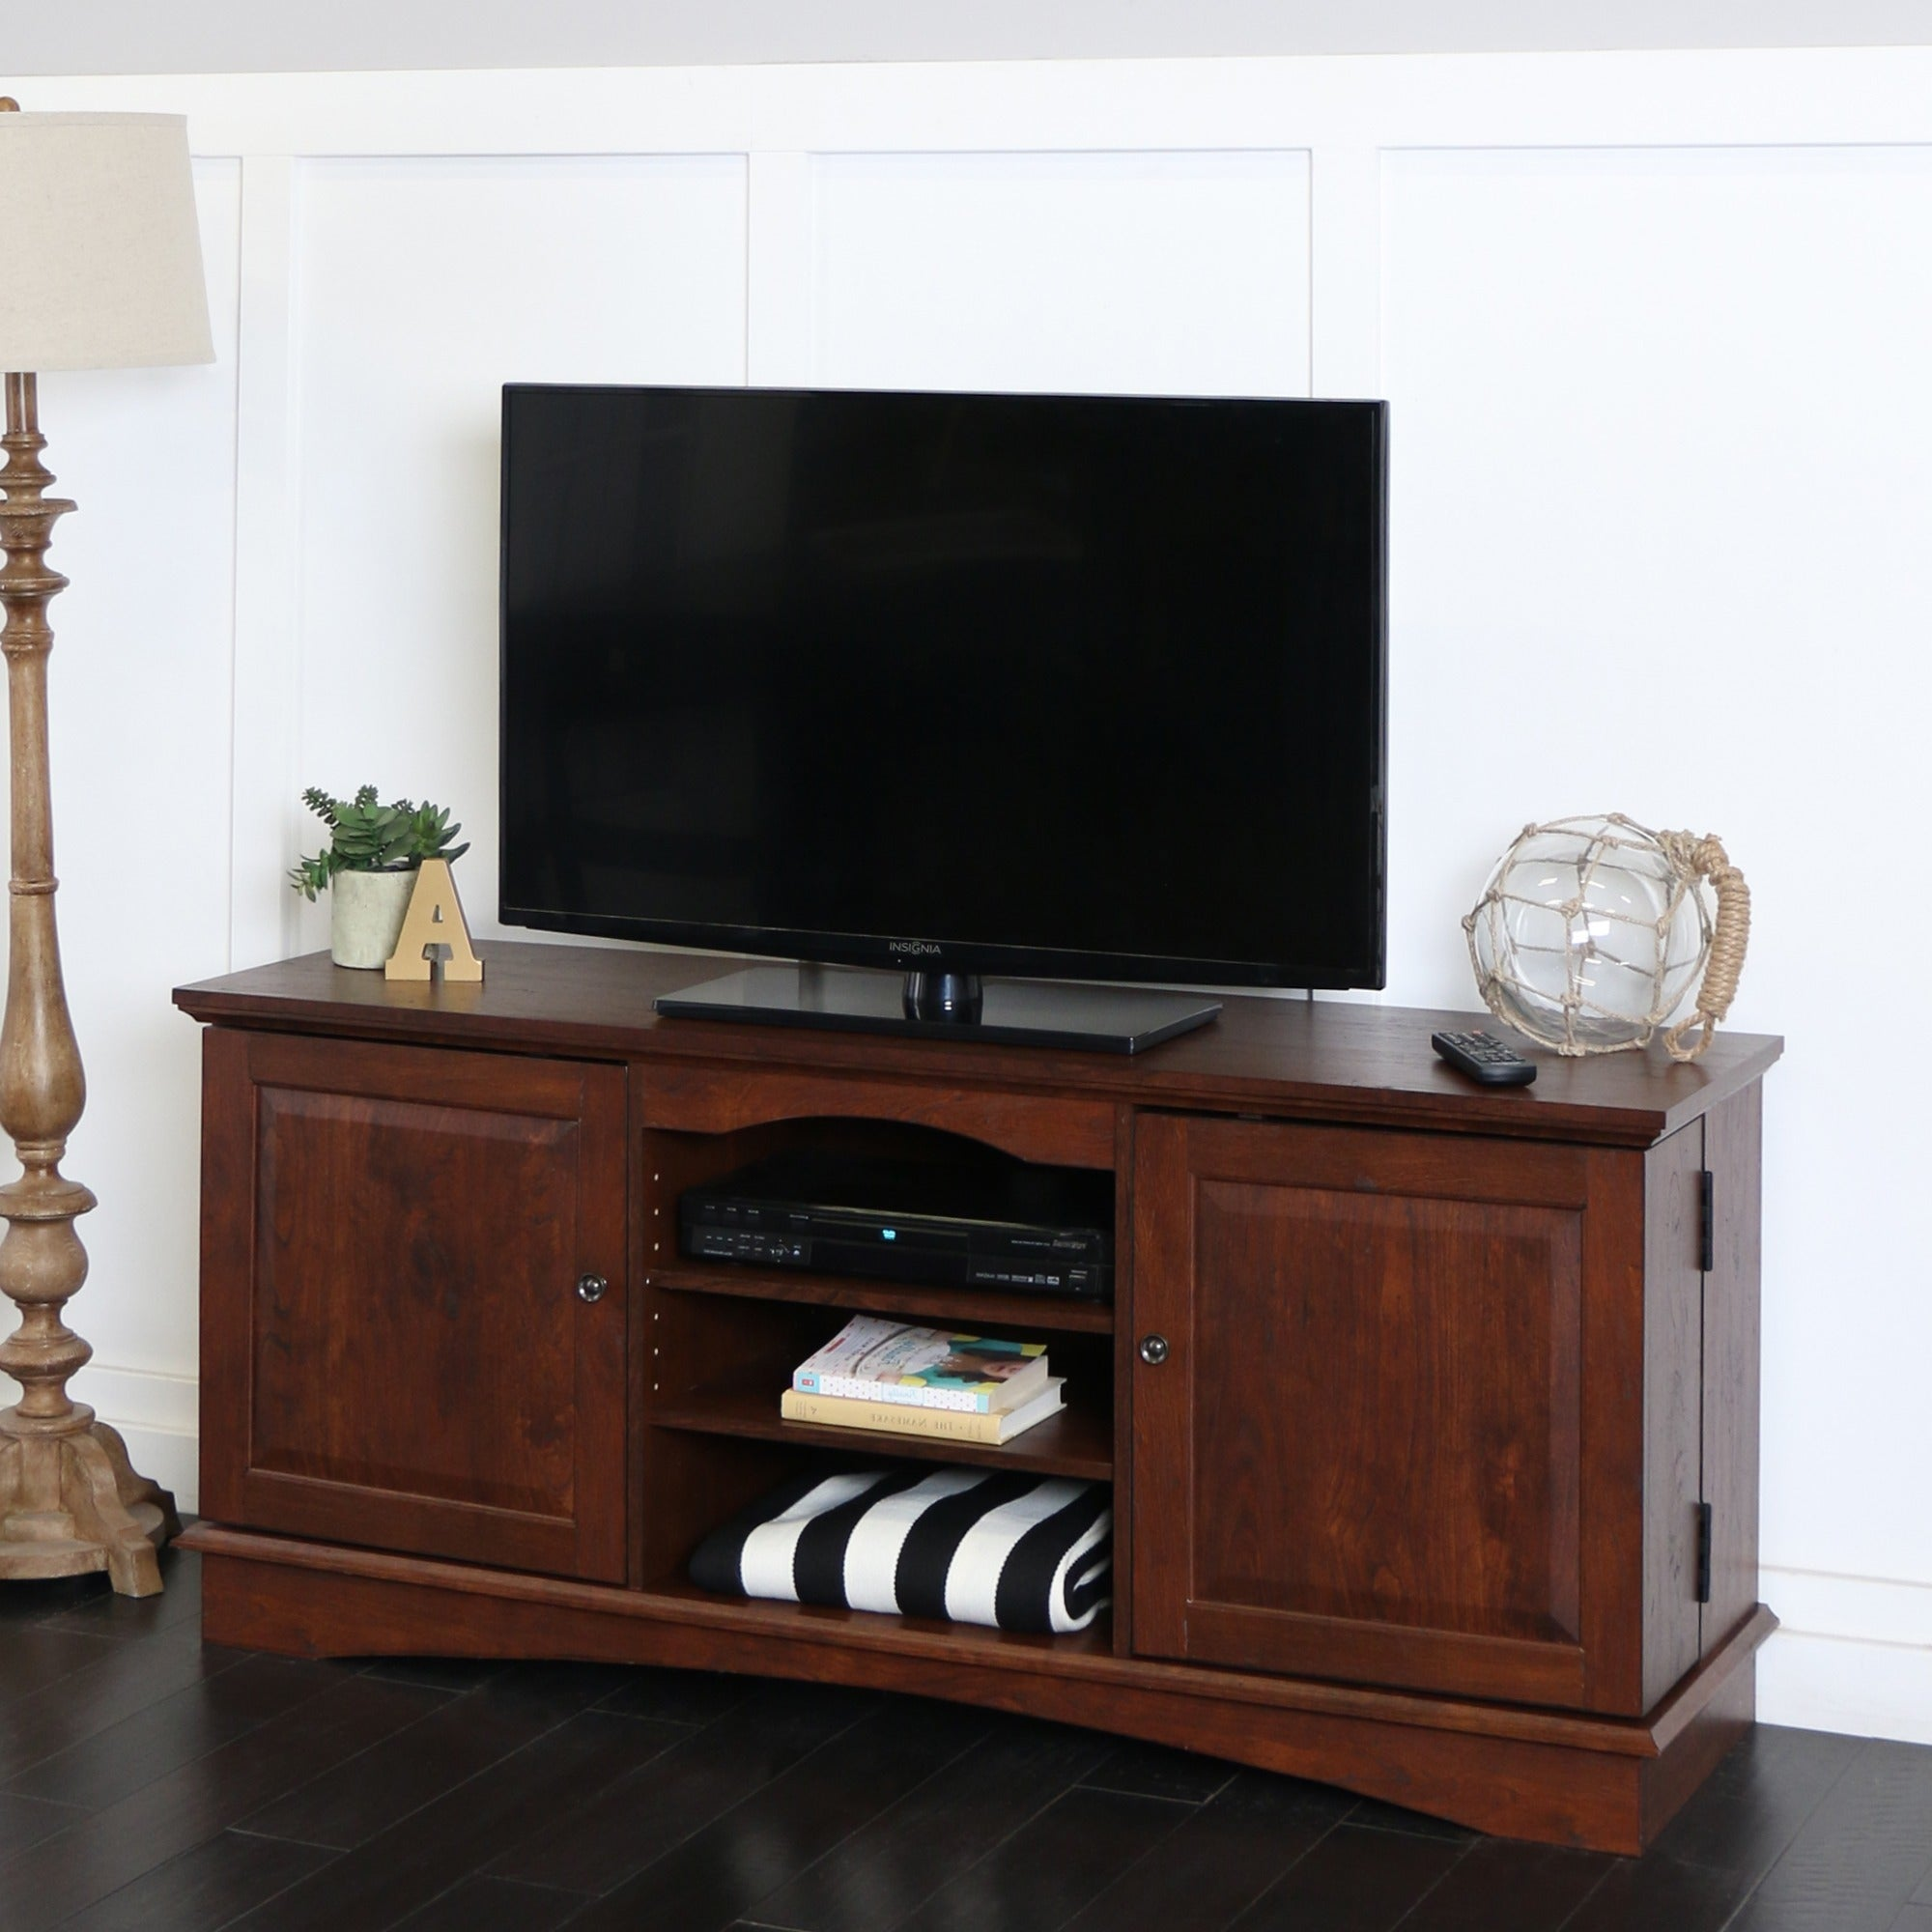 Shop 57 Tv Stand Console Traditional Brown 57 X 16 X 25h On